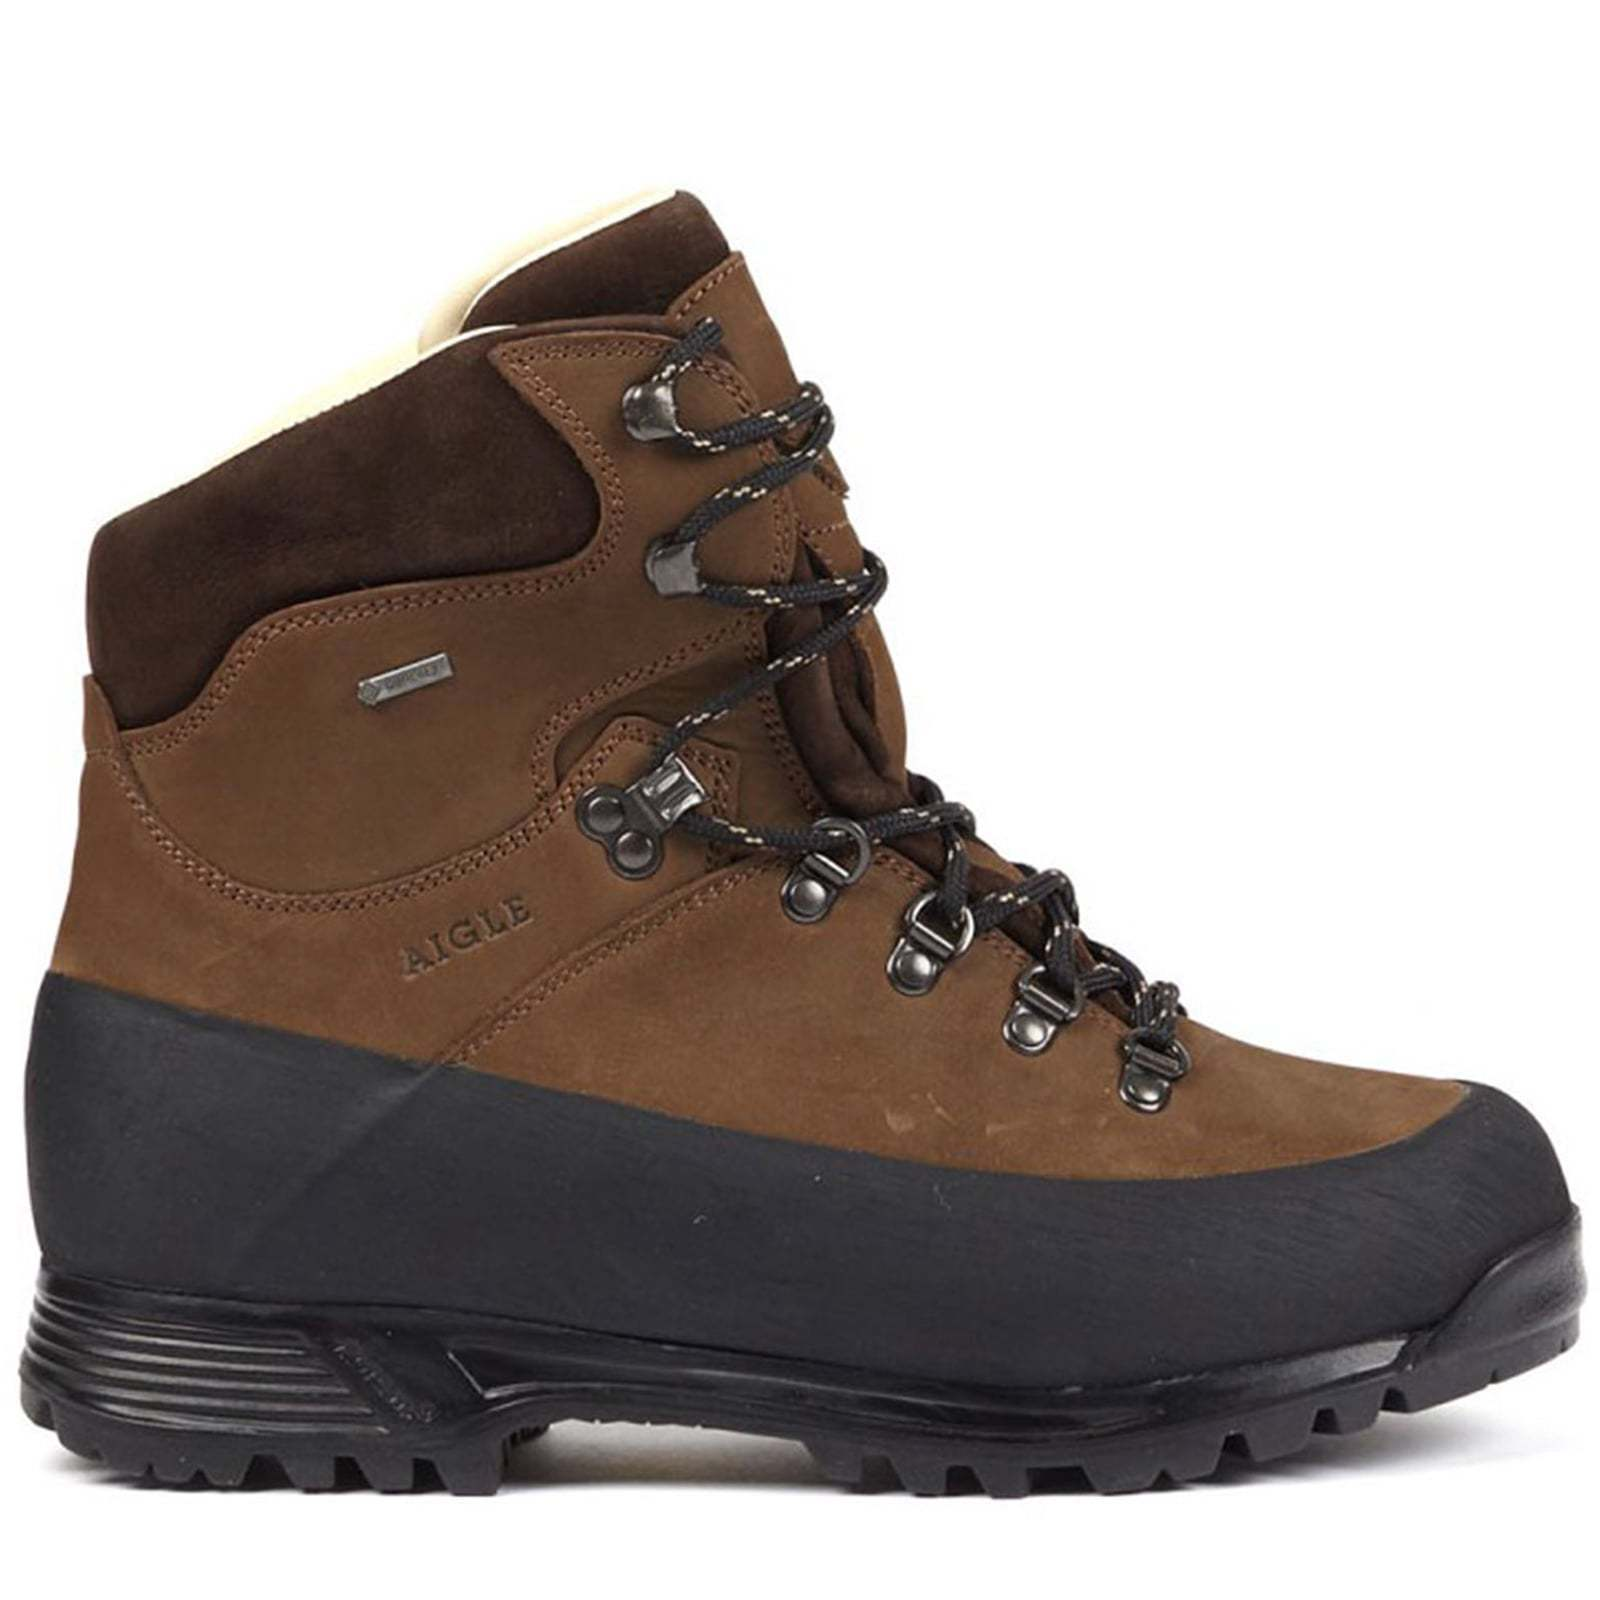 Aigle Chopwell GTX Mid Walking Boot - Reduced to £159